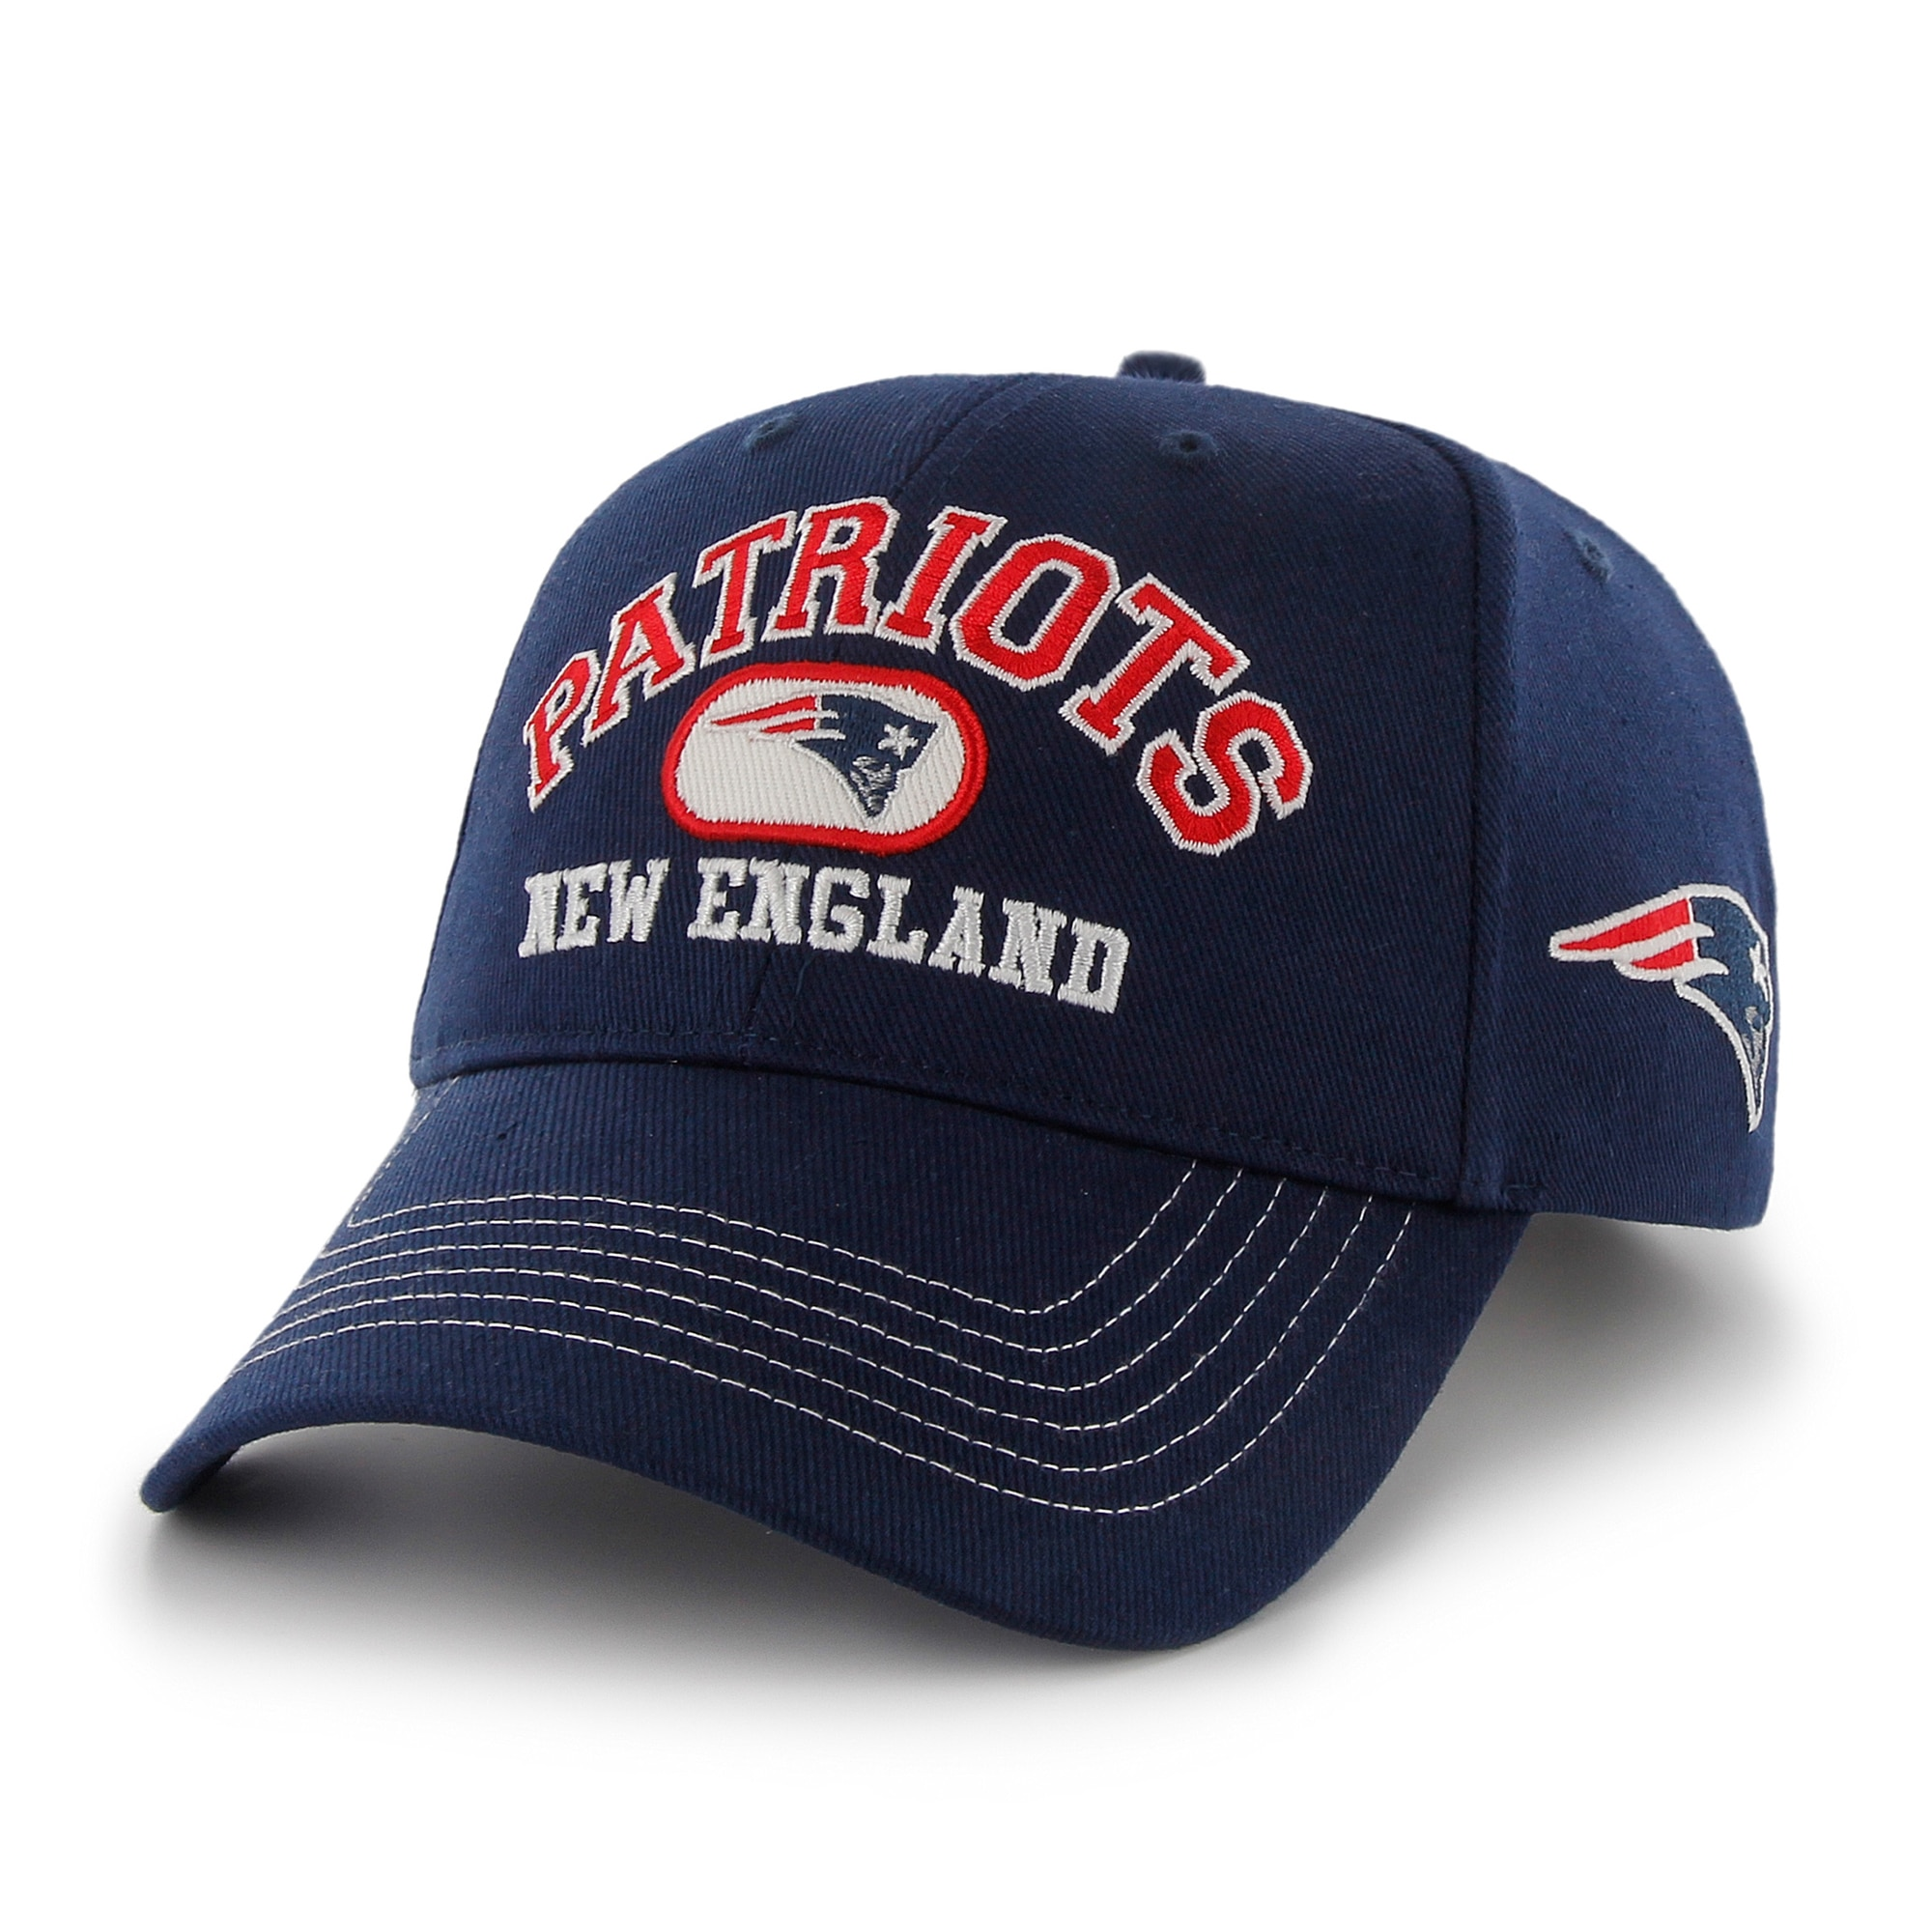 NFL New England Patriots Mass Draft Cap - Fan Favorite